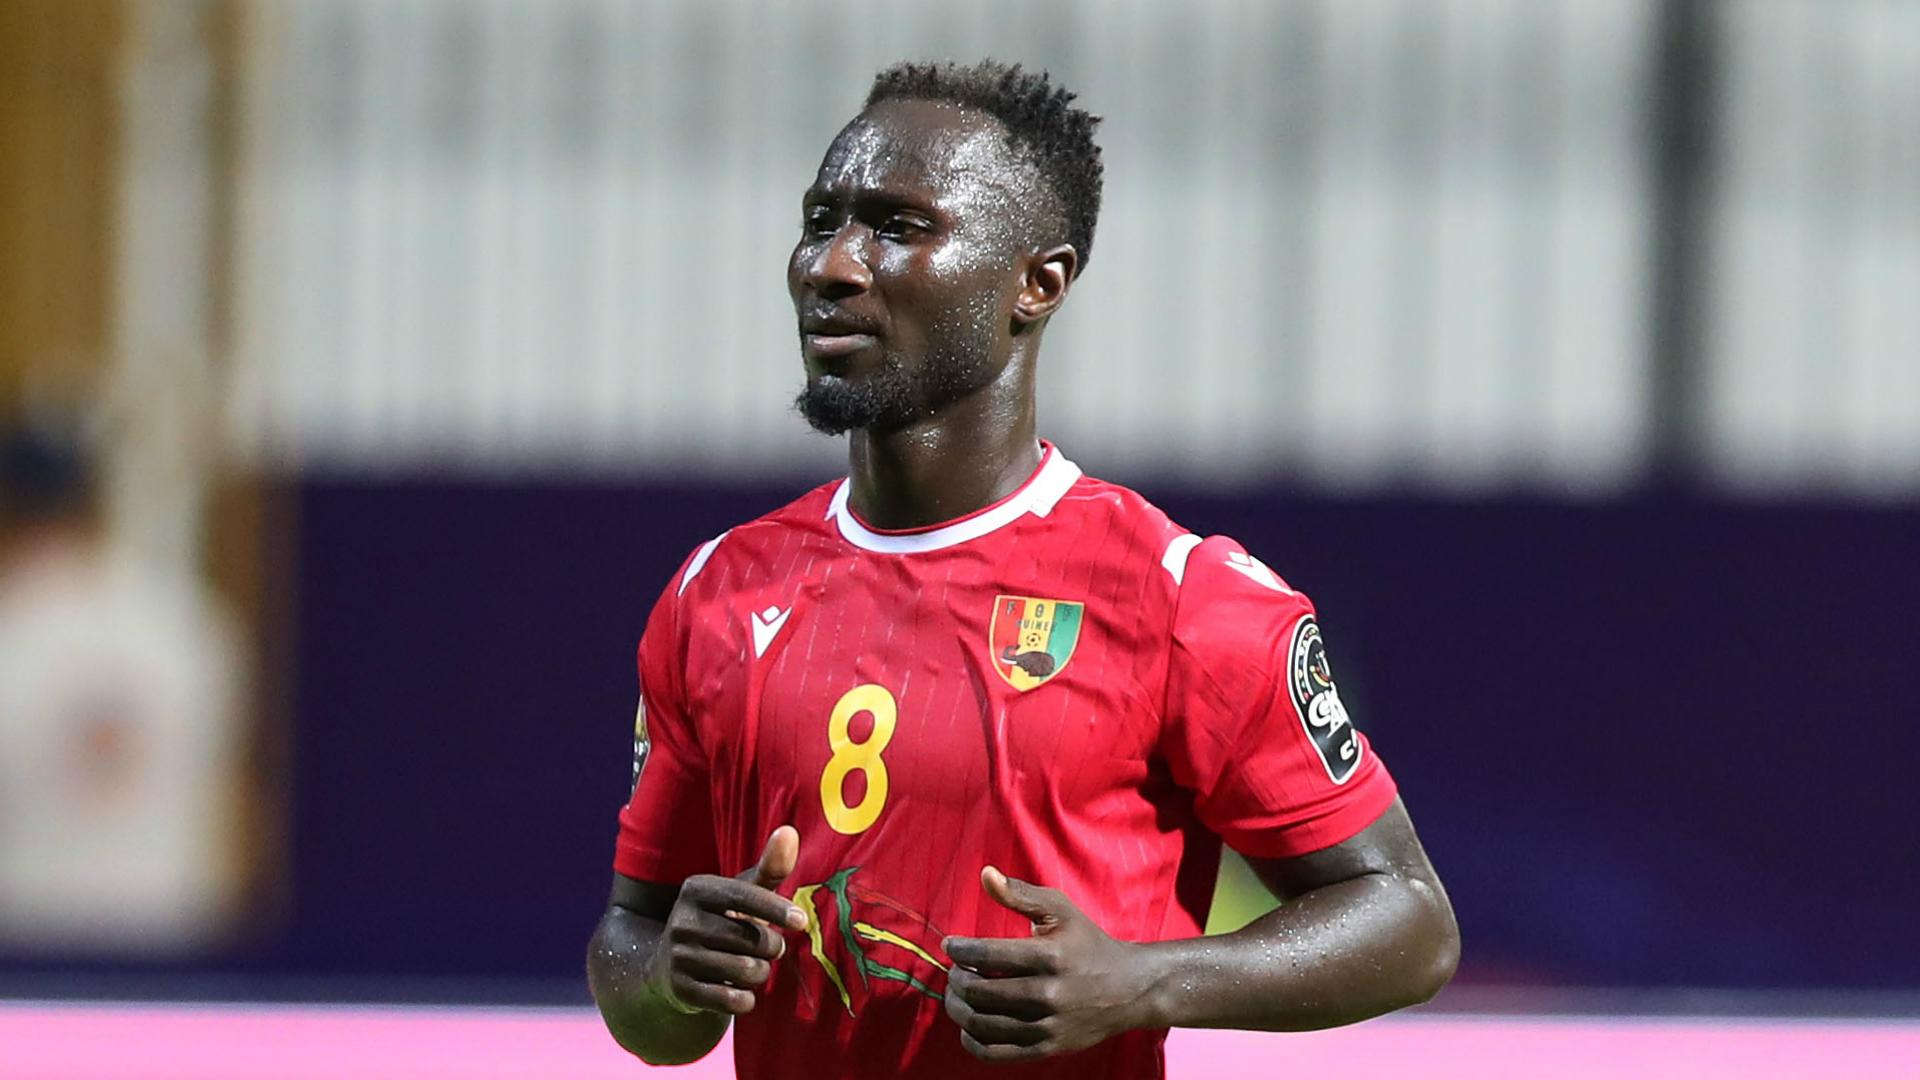 separation shoes 16630 e8dcc Afcon 2019: Naby Keita leaves Guinea camp for Liverpool ...